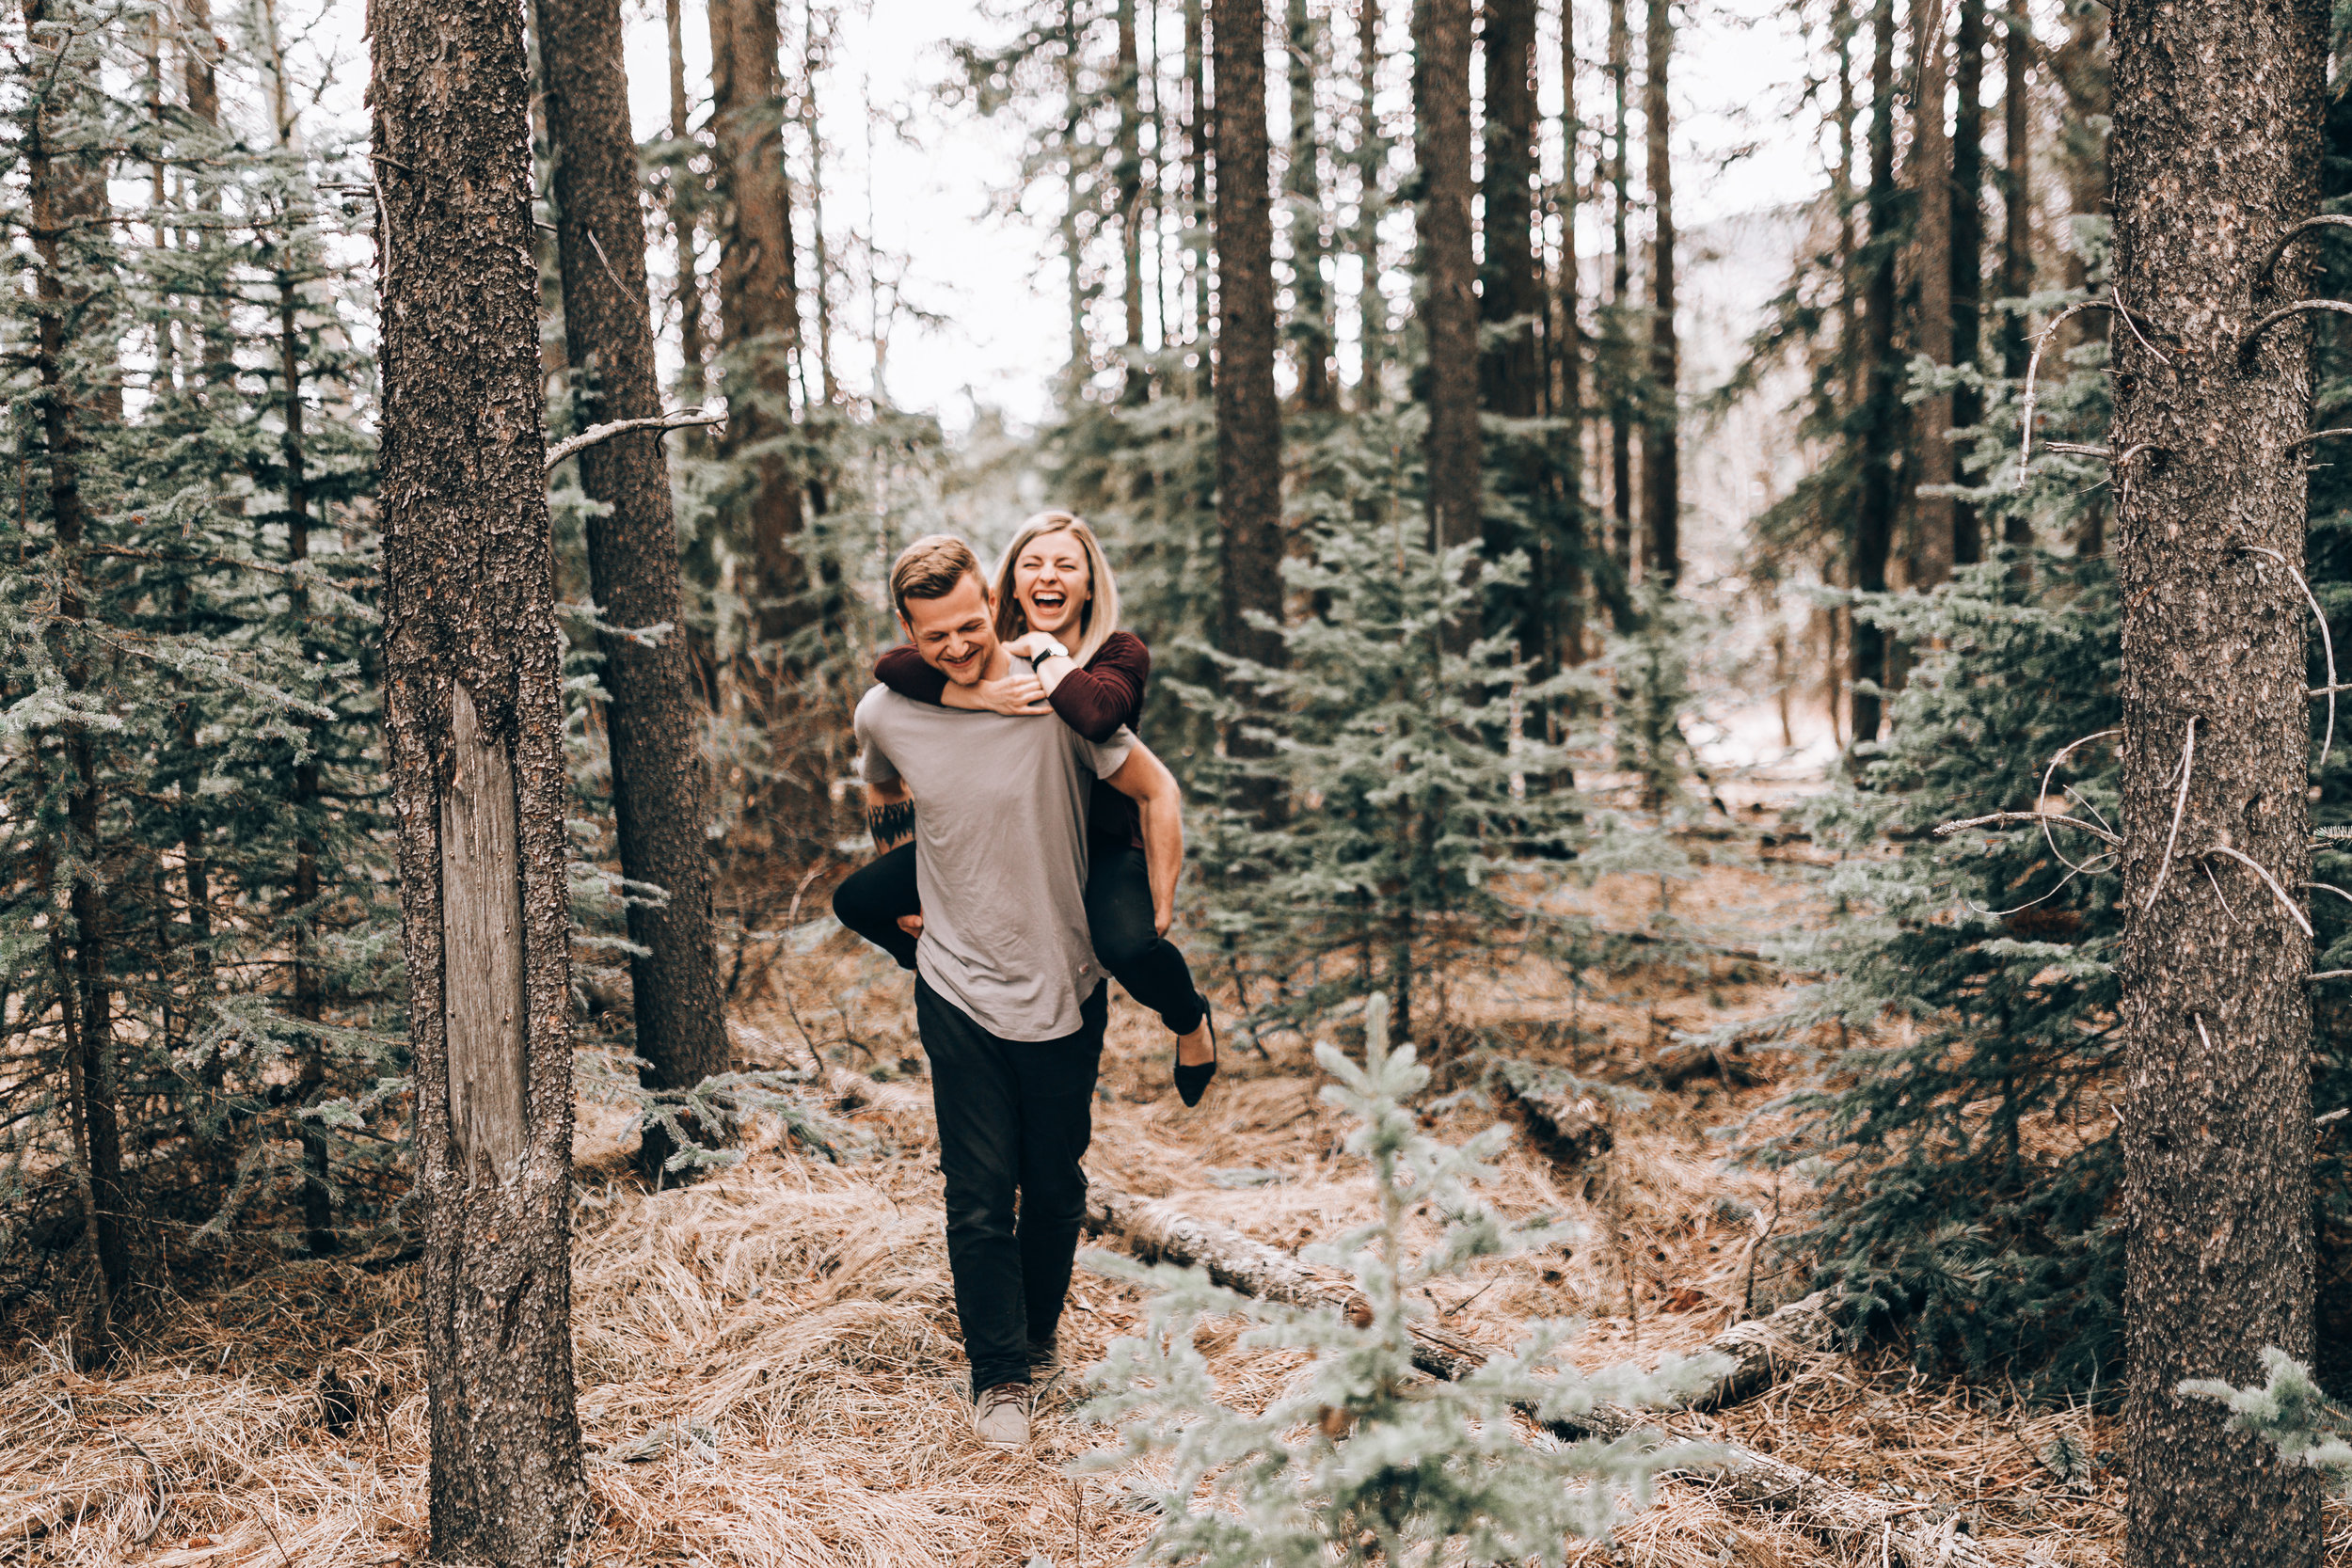 simpleperfectionsphotography.cullen+chelsey-30.jpg